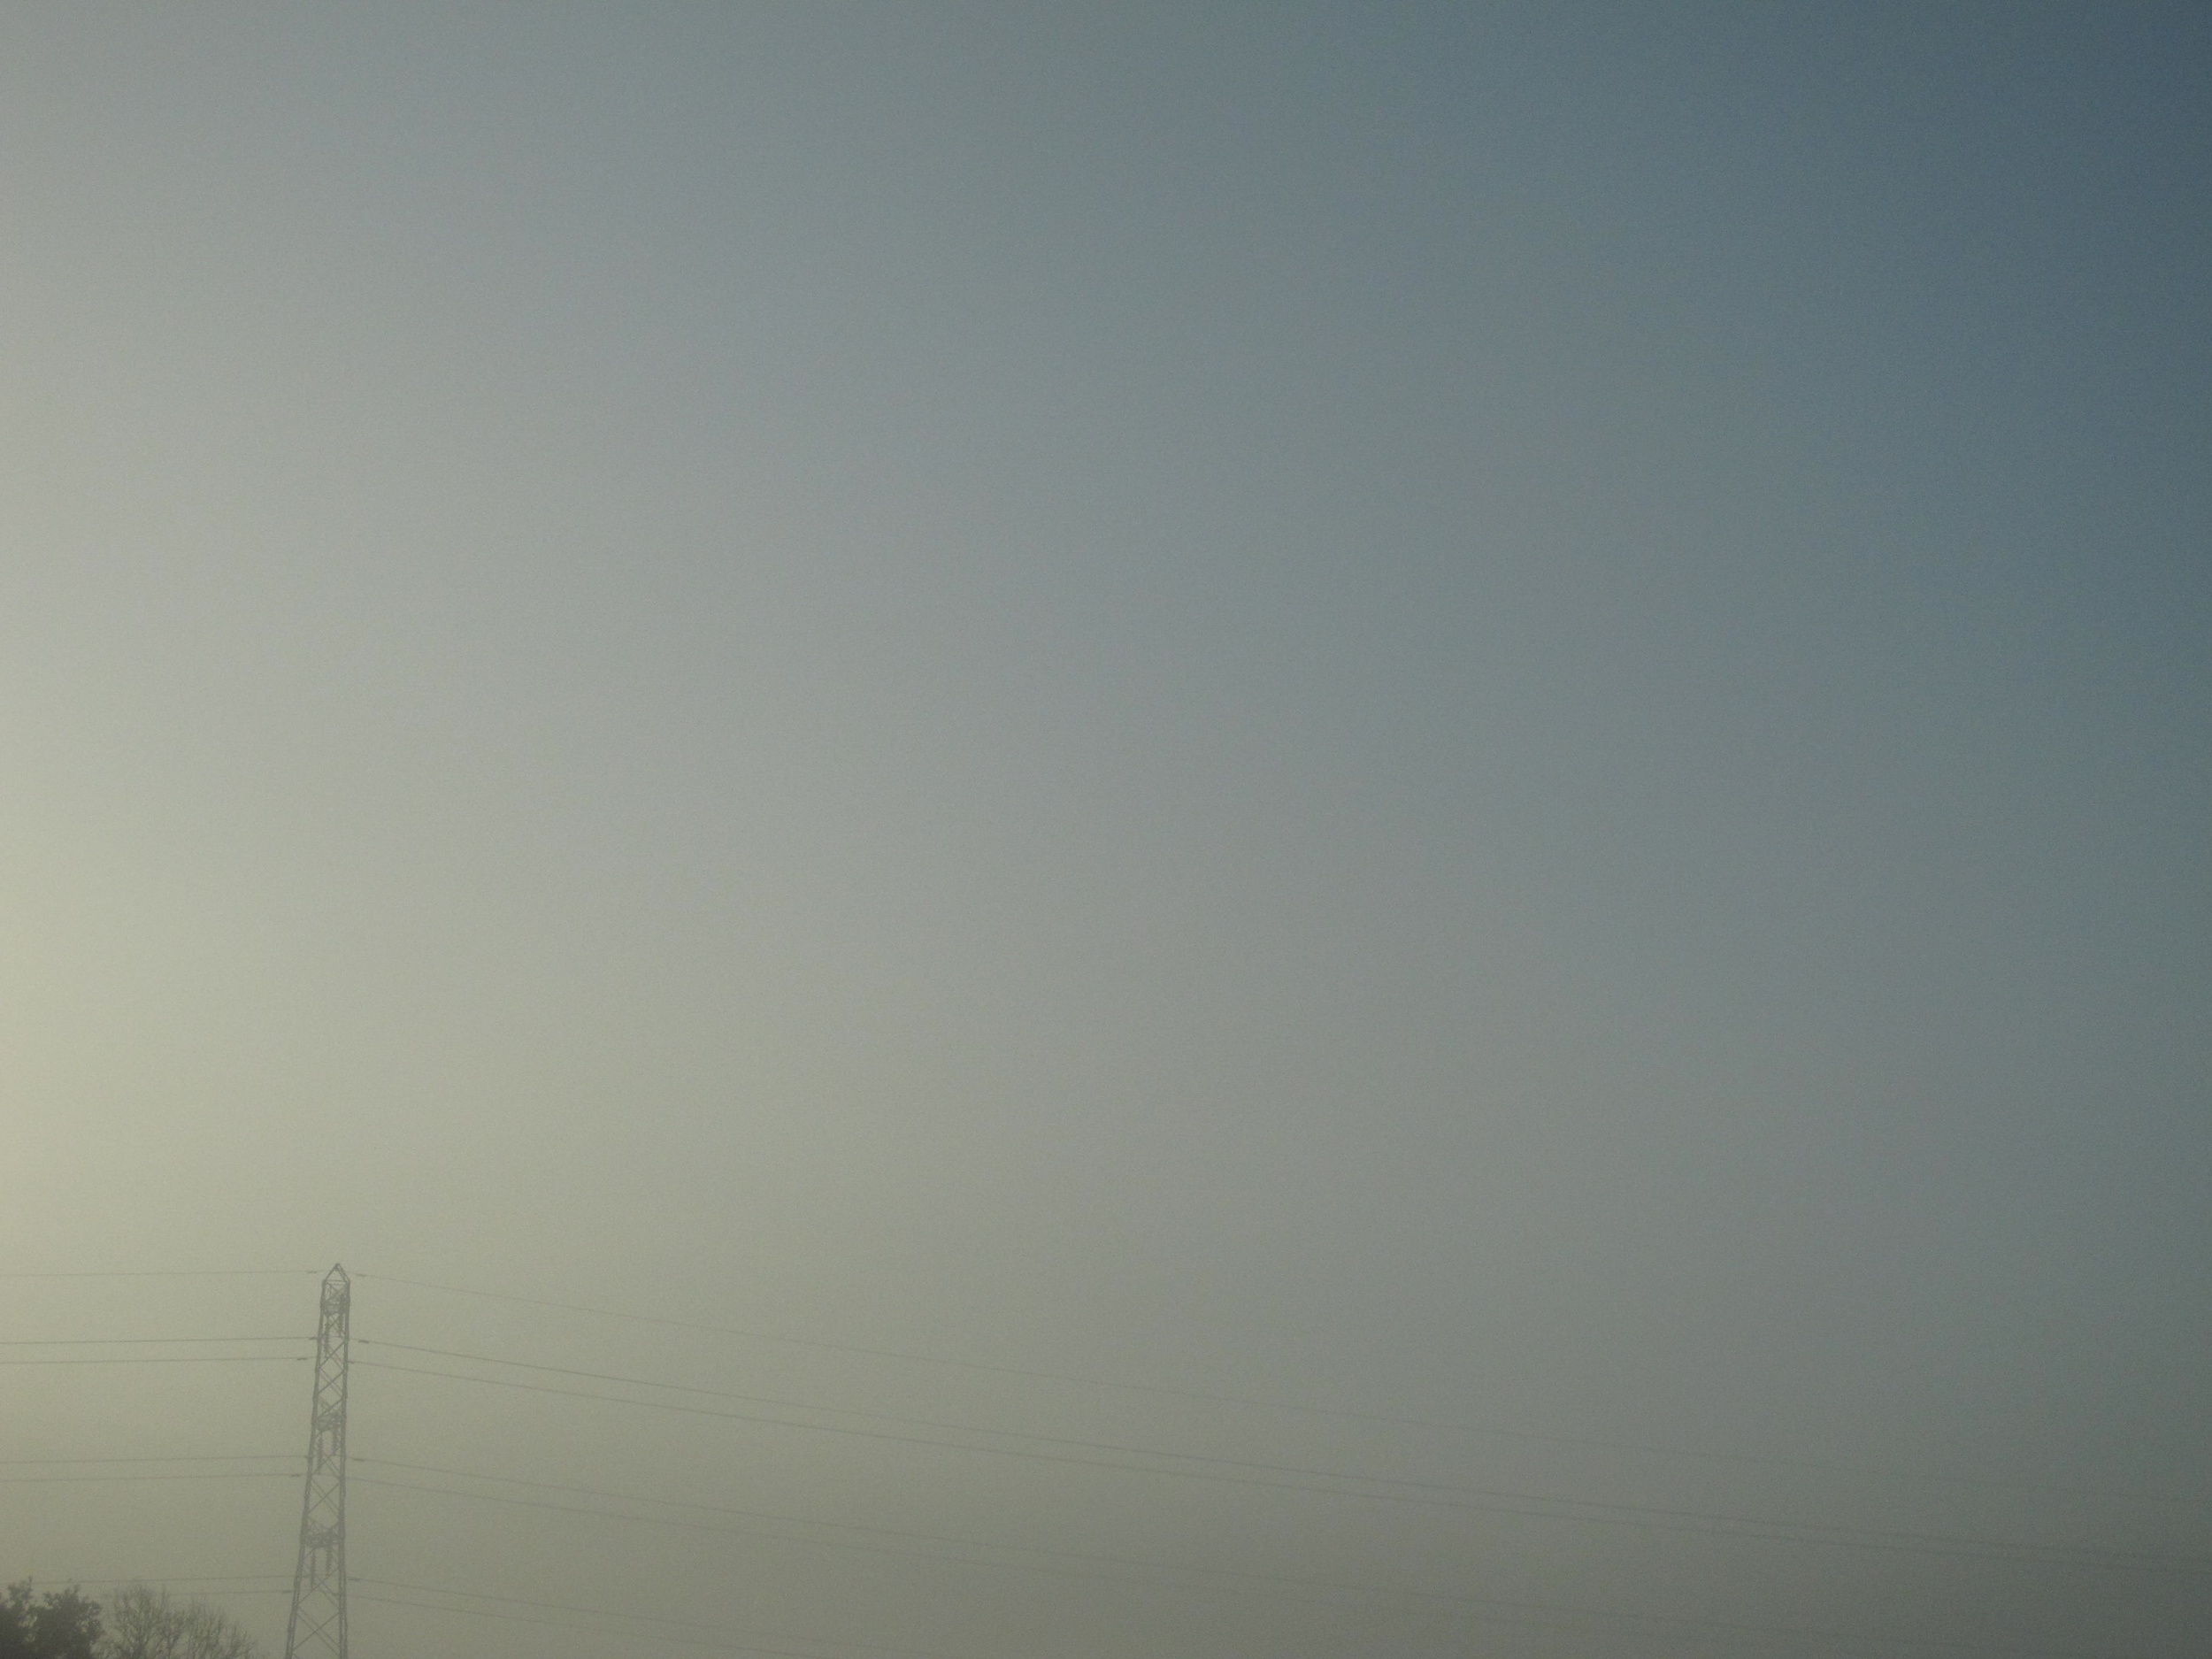 Transmission tower in mist at sunrise